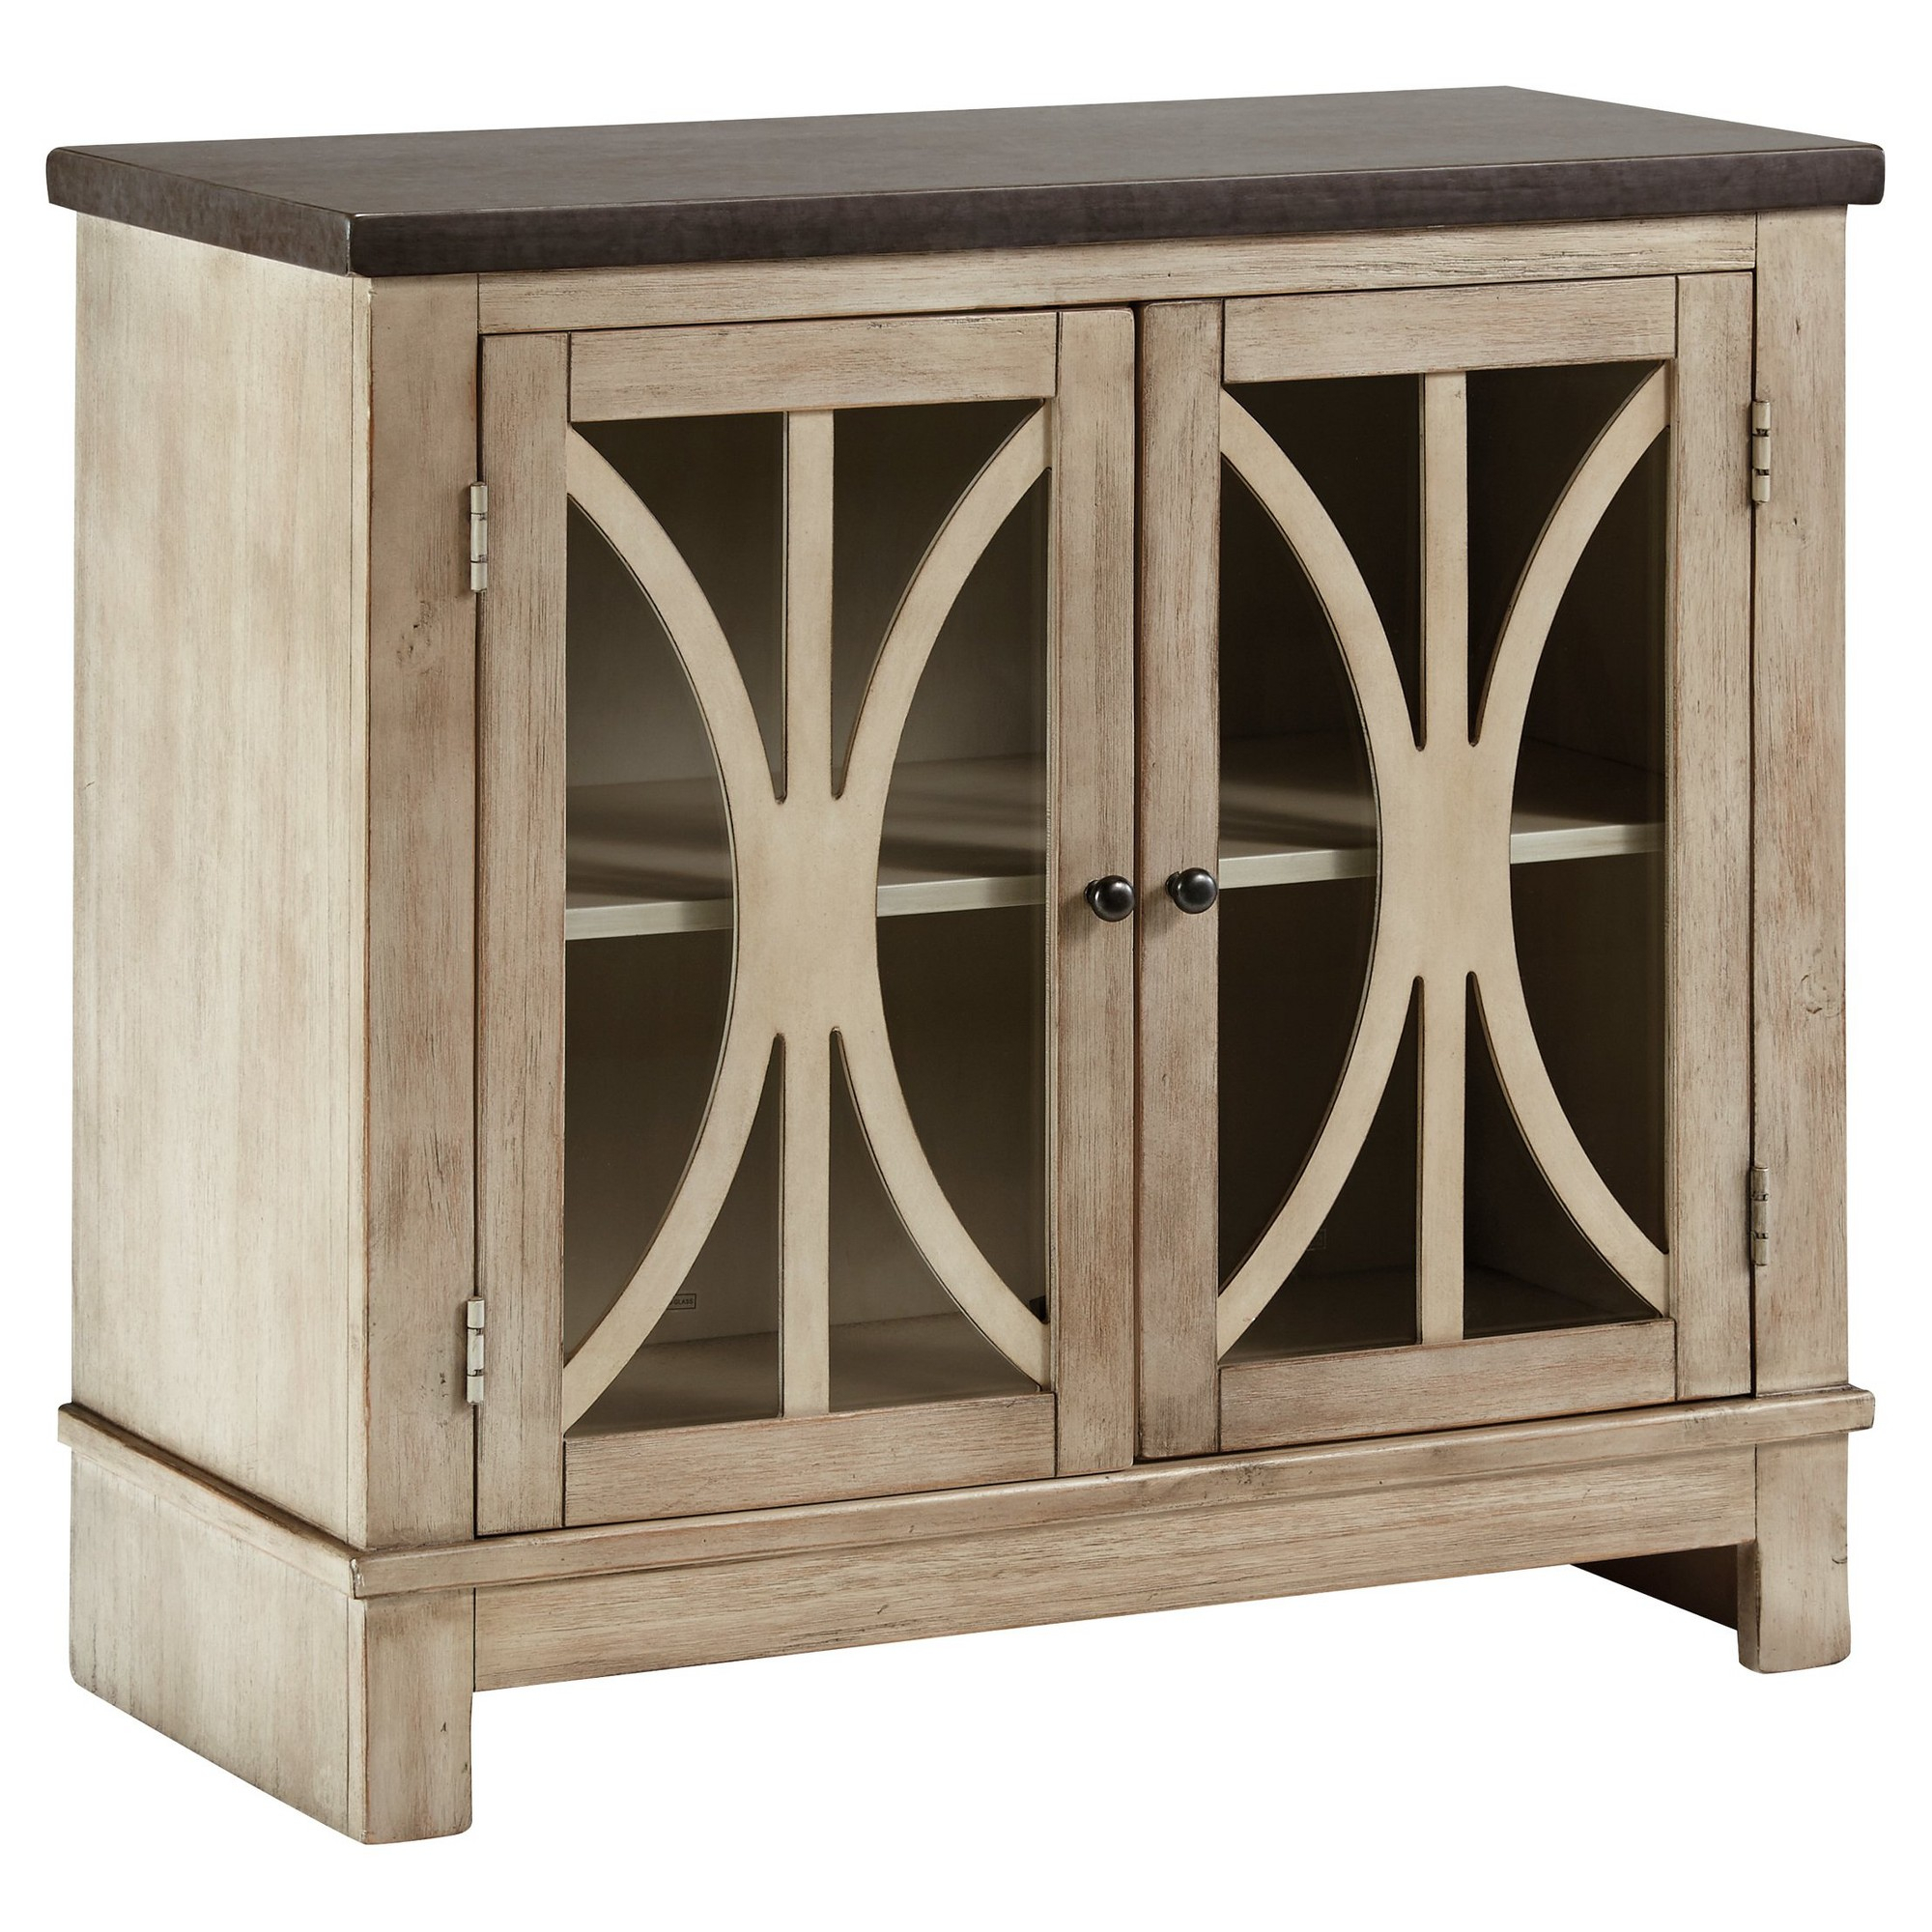 One Cabinet White Wonderful Furniture Wayfair Ashley Accent Pertaining To Kattie 4 Door Cabinets (View 20 of 30)